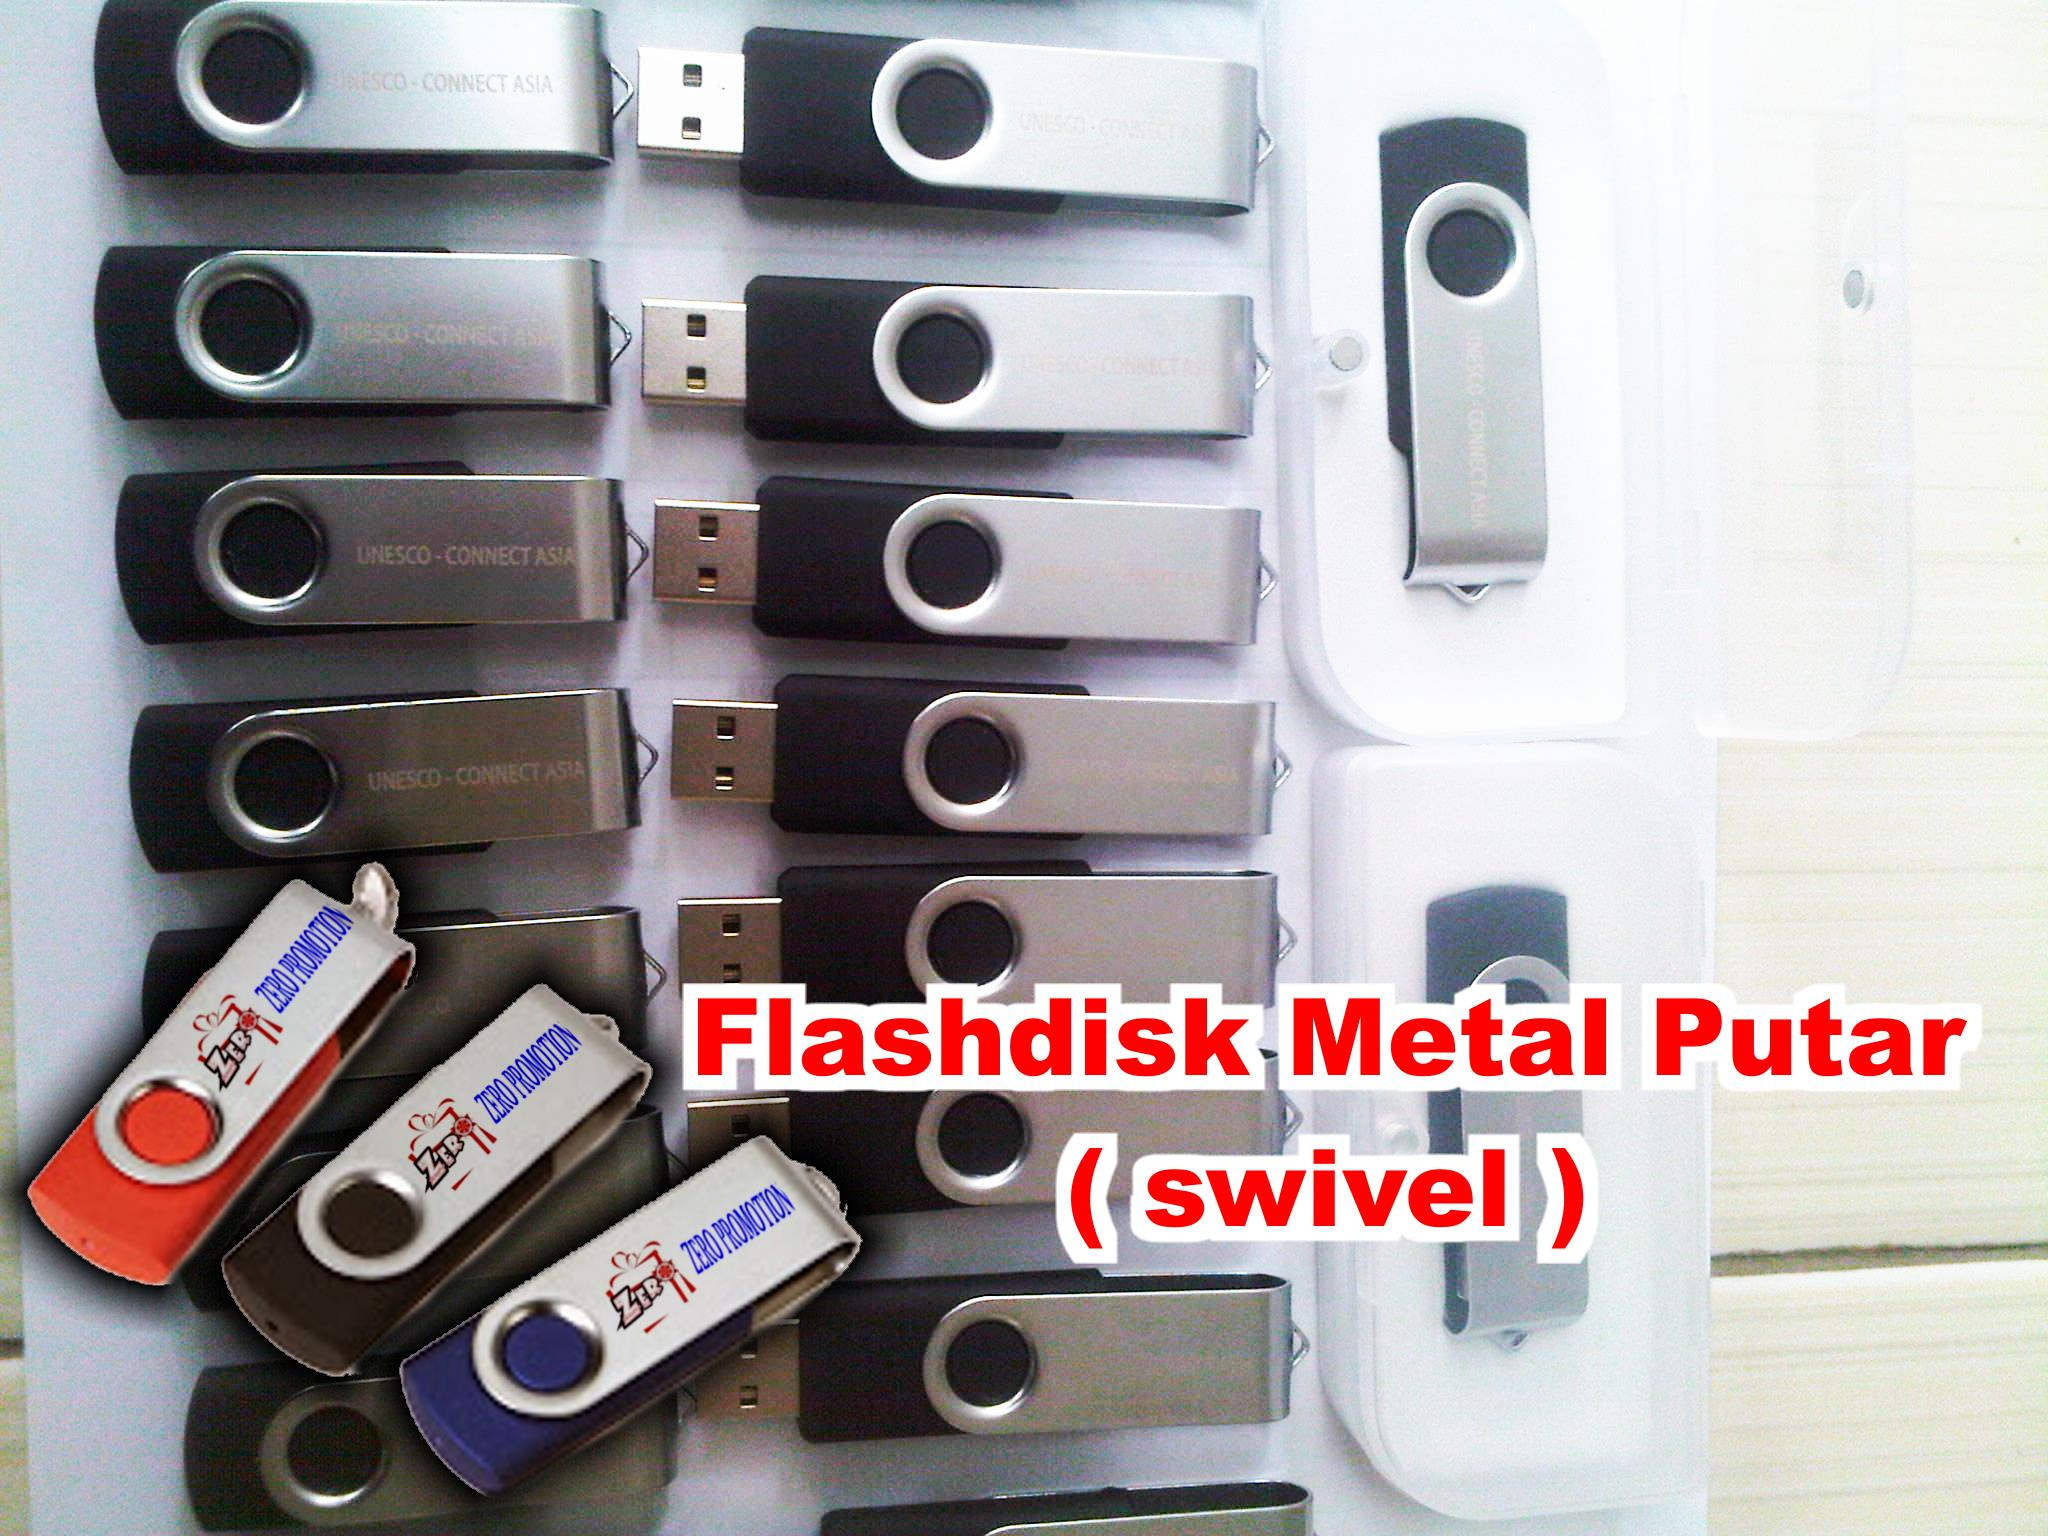 https://res.cloudinary.com/daydapk4h/image/upload/v1516353466/jual-flashdisk-promosi-murah_gf7qzt.jpg